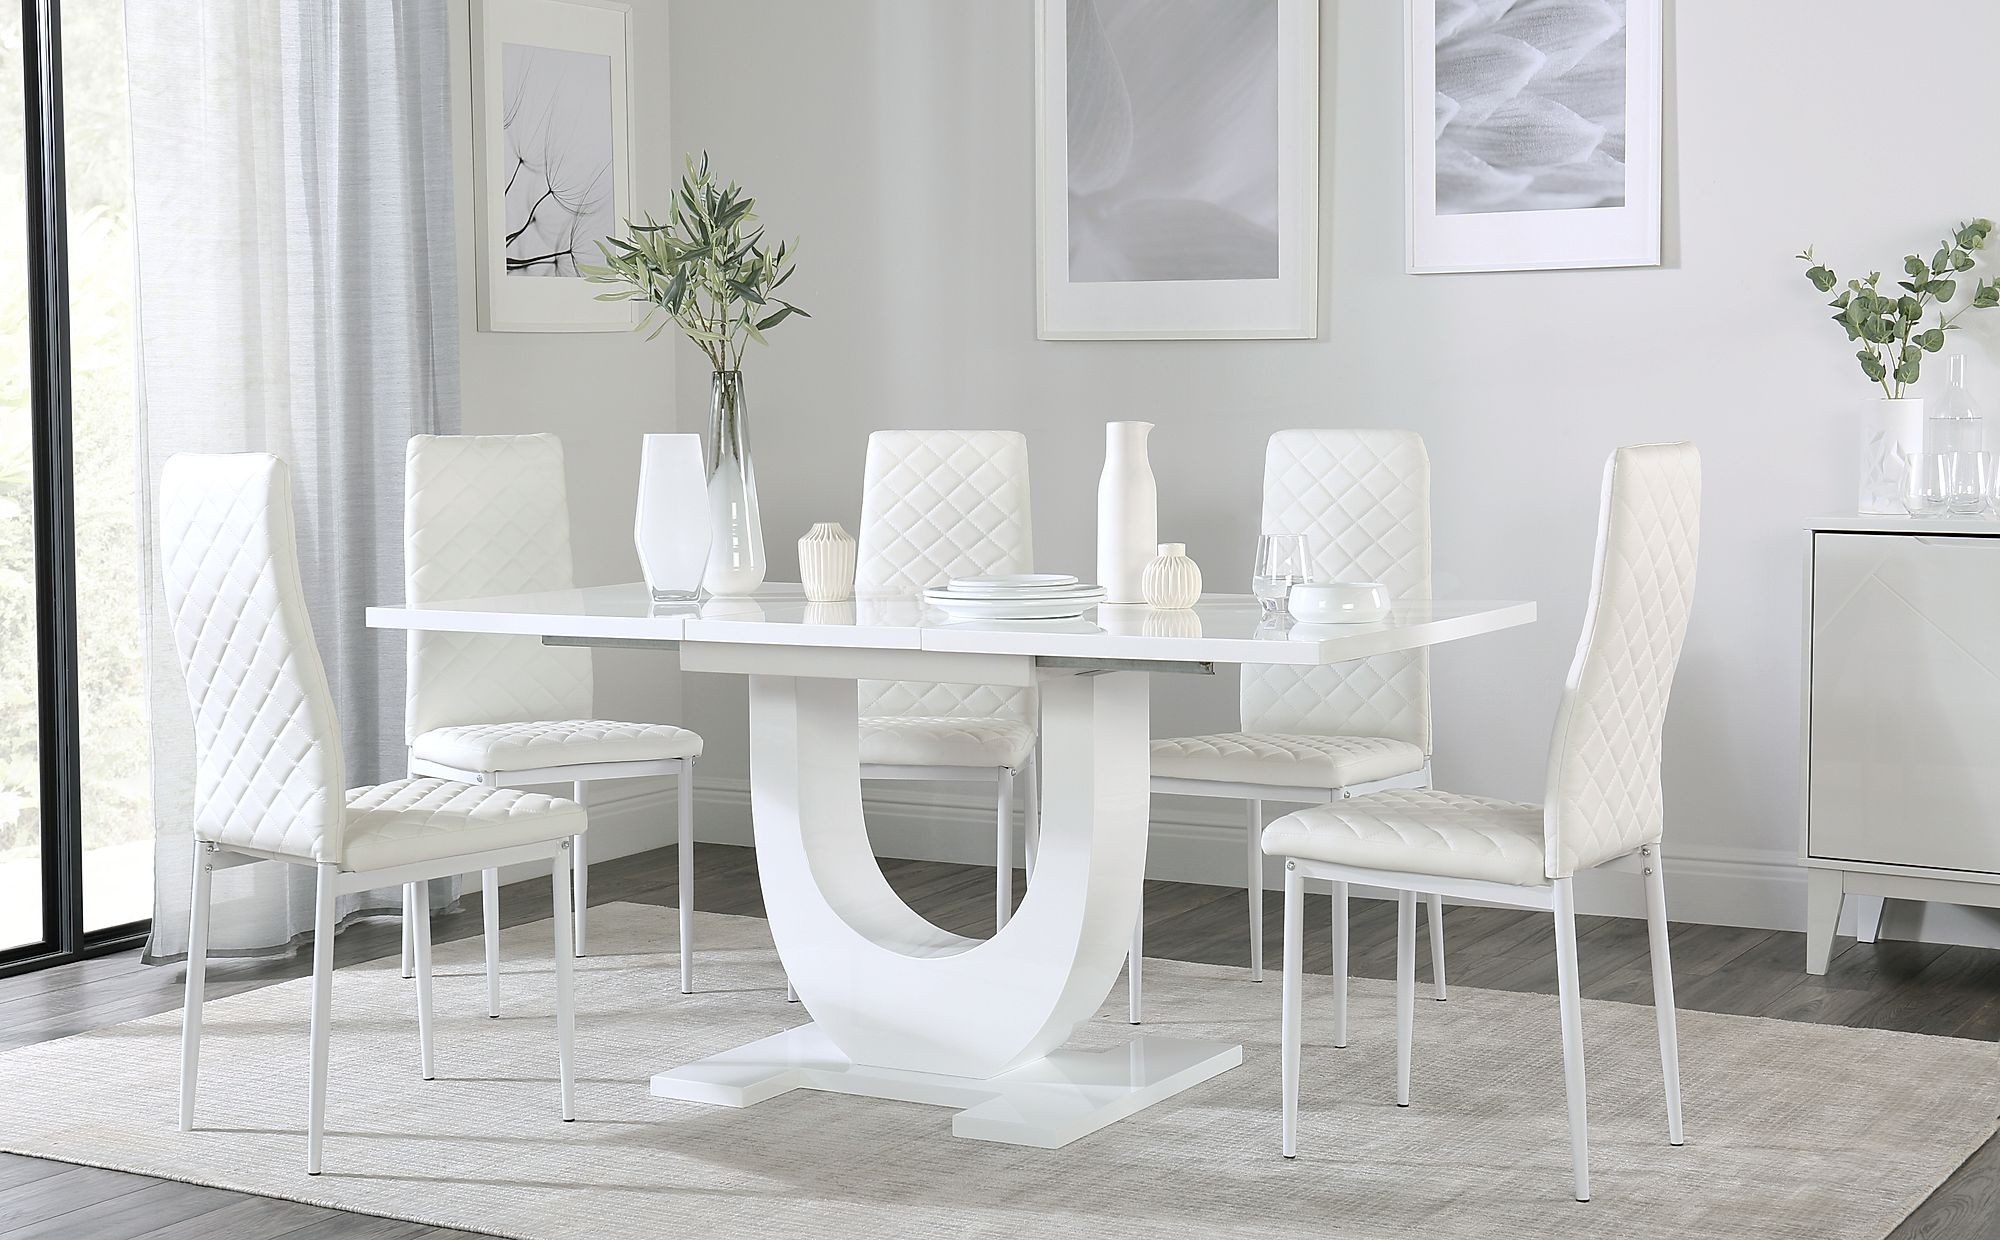 Oslo White High Gloss Extending Dining Table with 6 Renzo White ... 86b1d9312aac